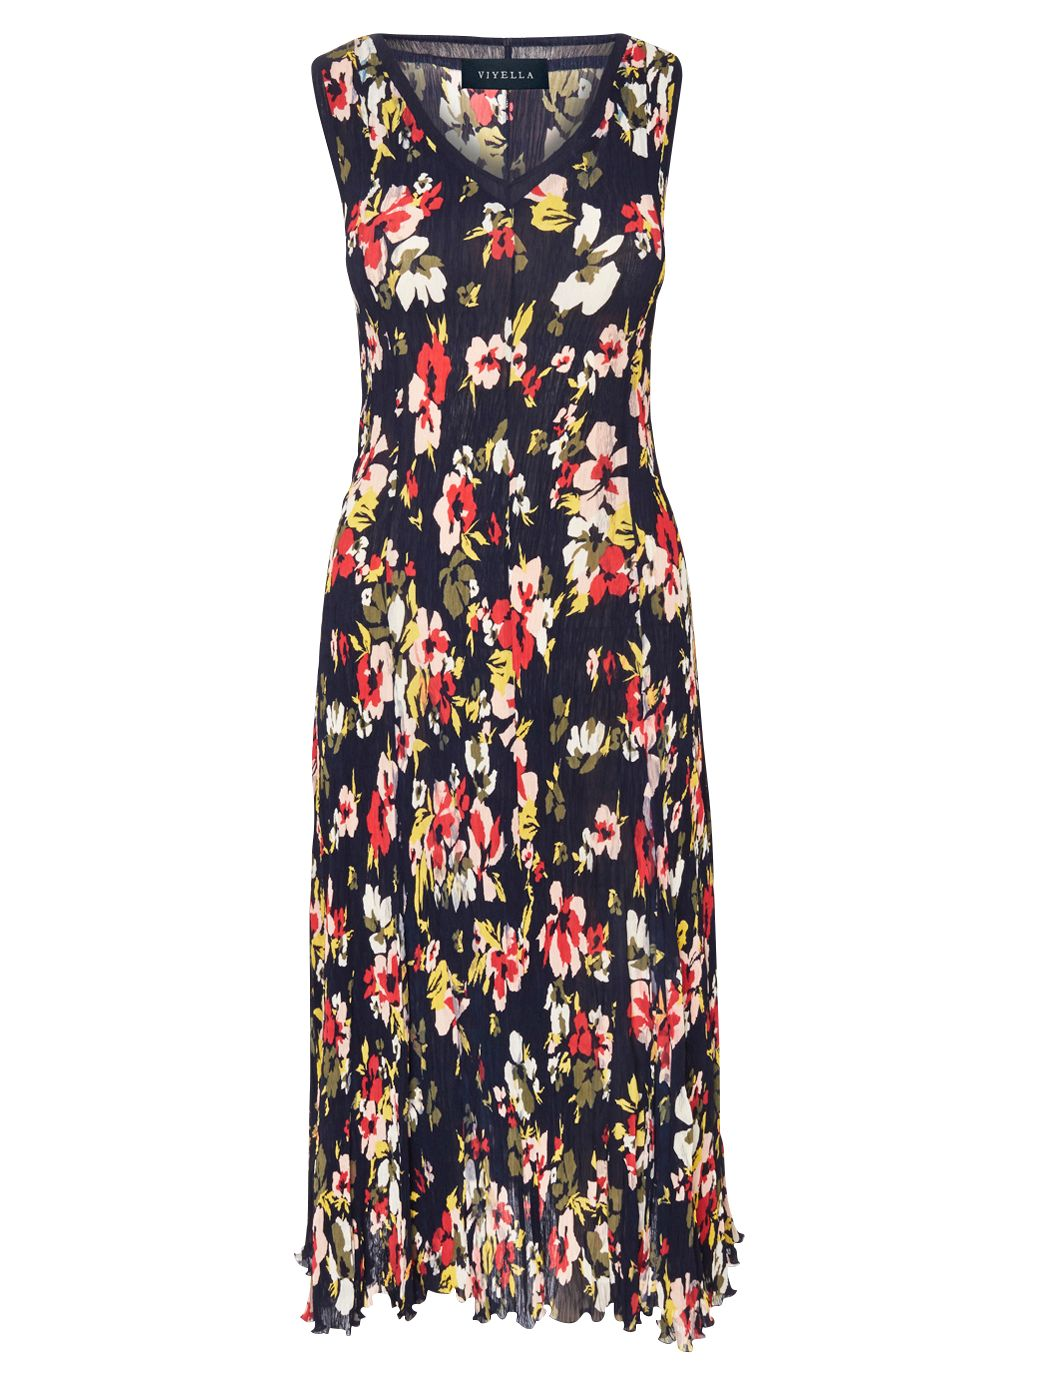 viyella floral print crinkle dress multi, viyella, floral, print, crinkle, dress, multi, l|xl|m|s|xxl, women, plus size, womens dresses, special offers, womenswear offers, up to 30% off selected viyella, 1885301